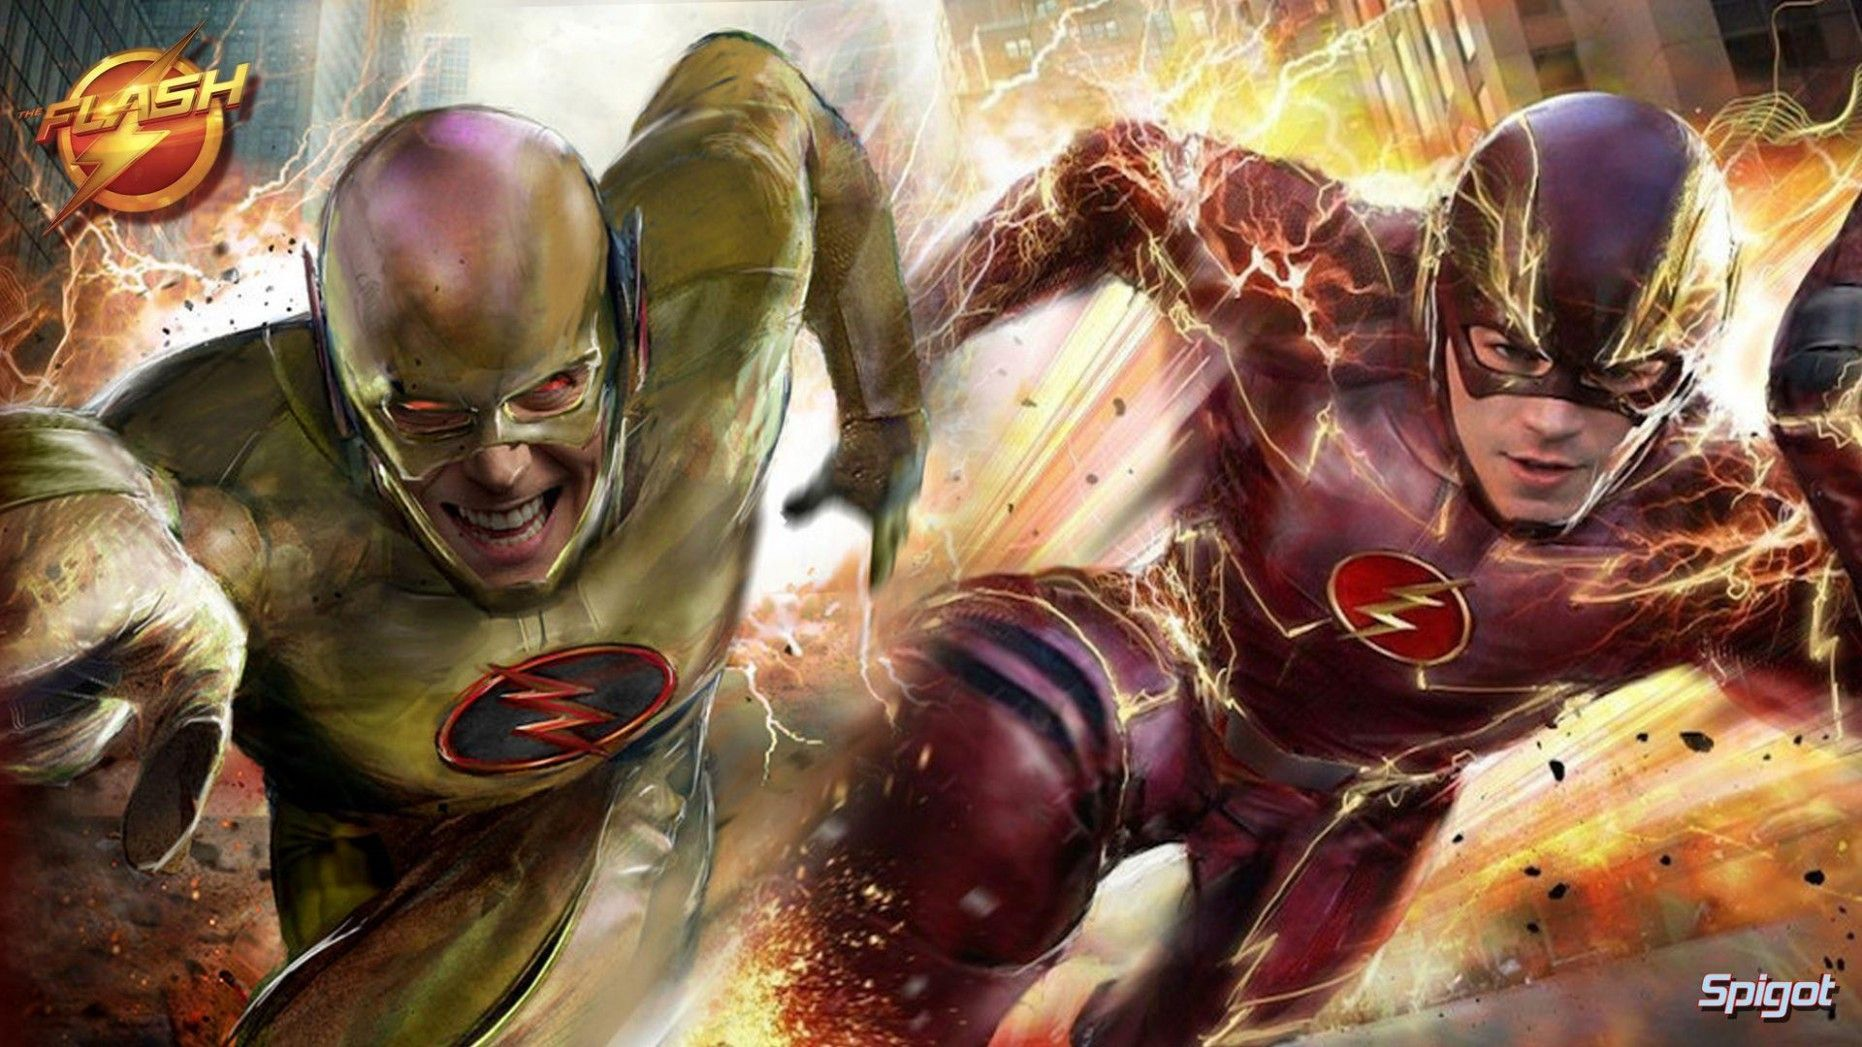 Flash Vs. Reverse Flash Wallpapers in 2020 Flash